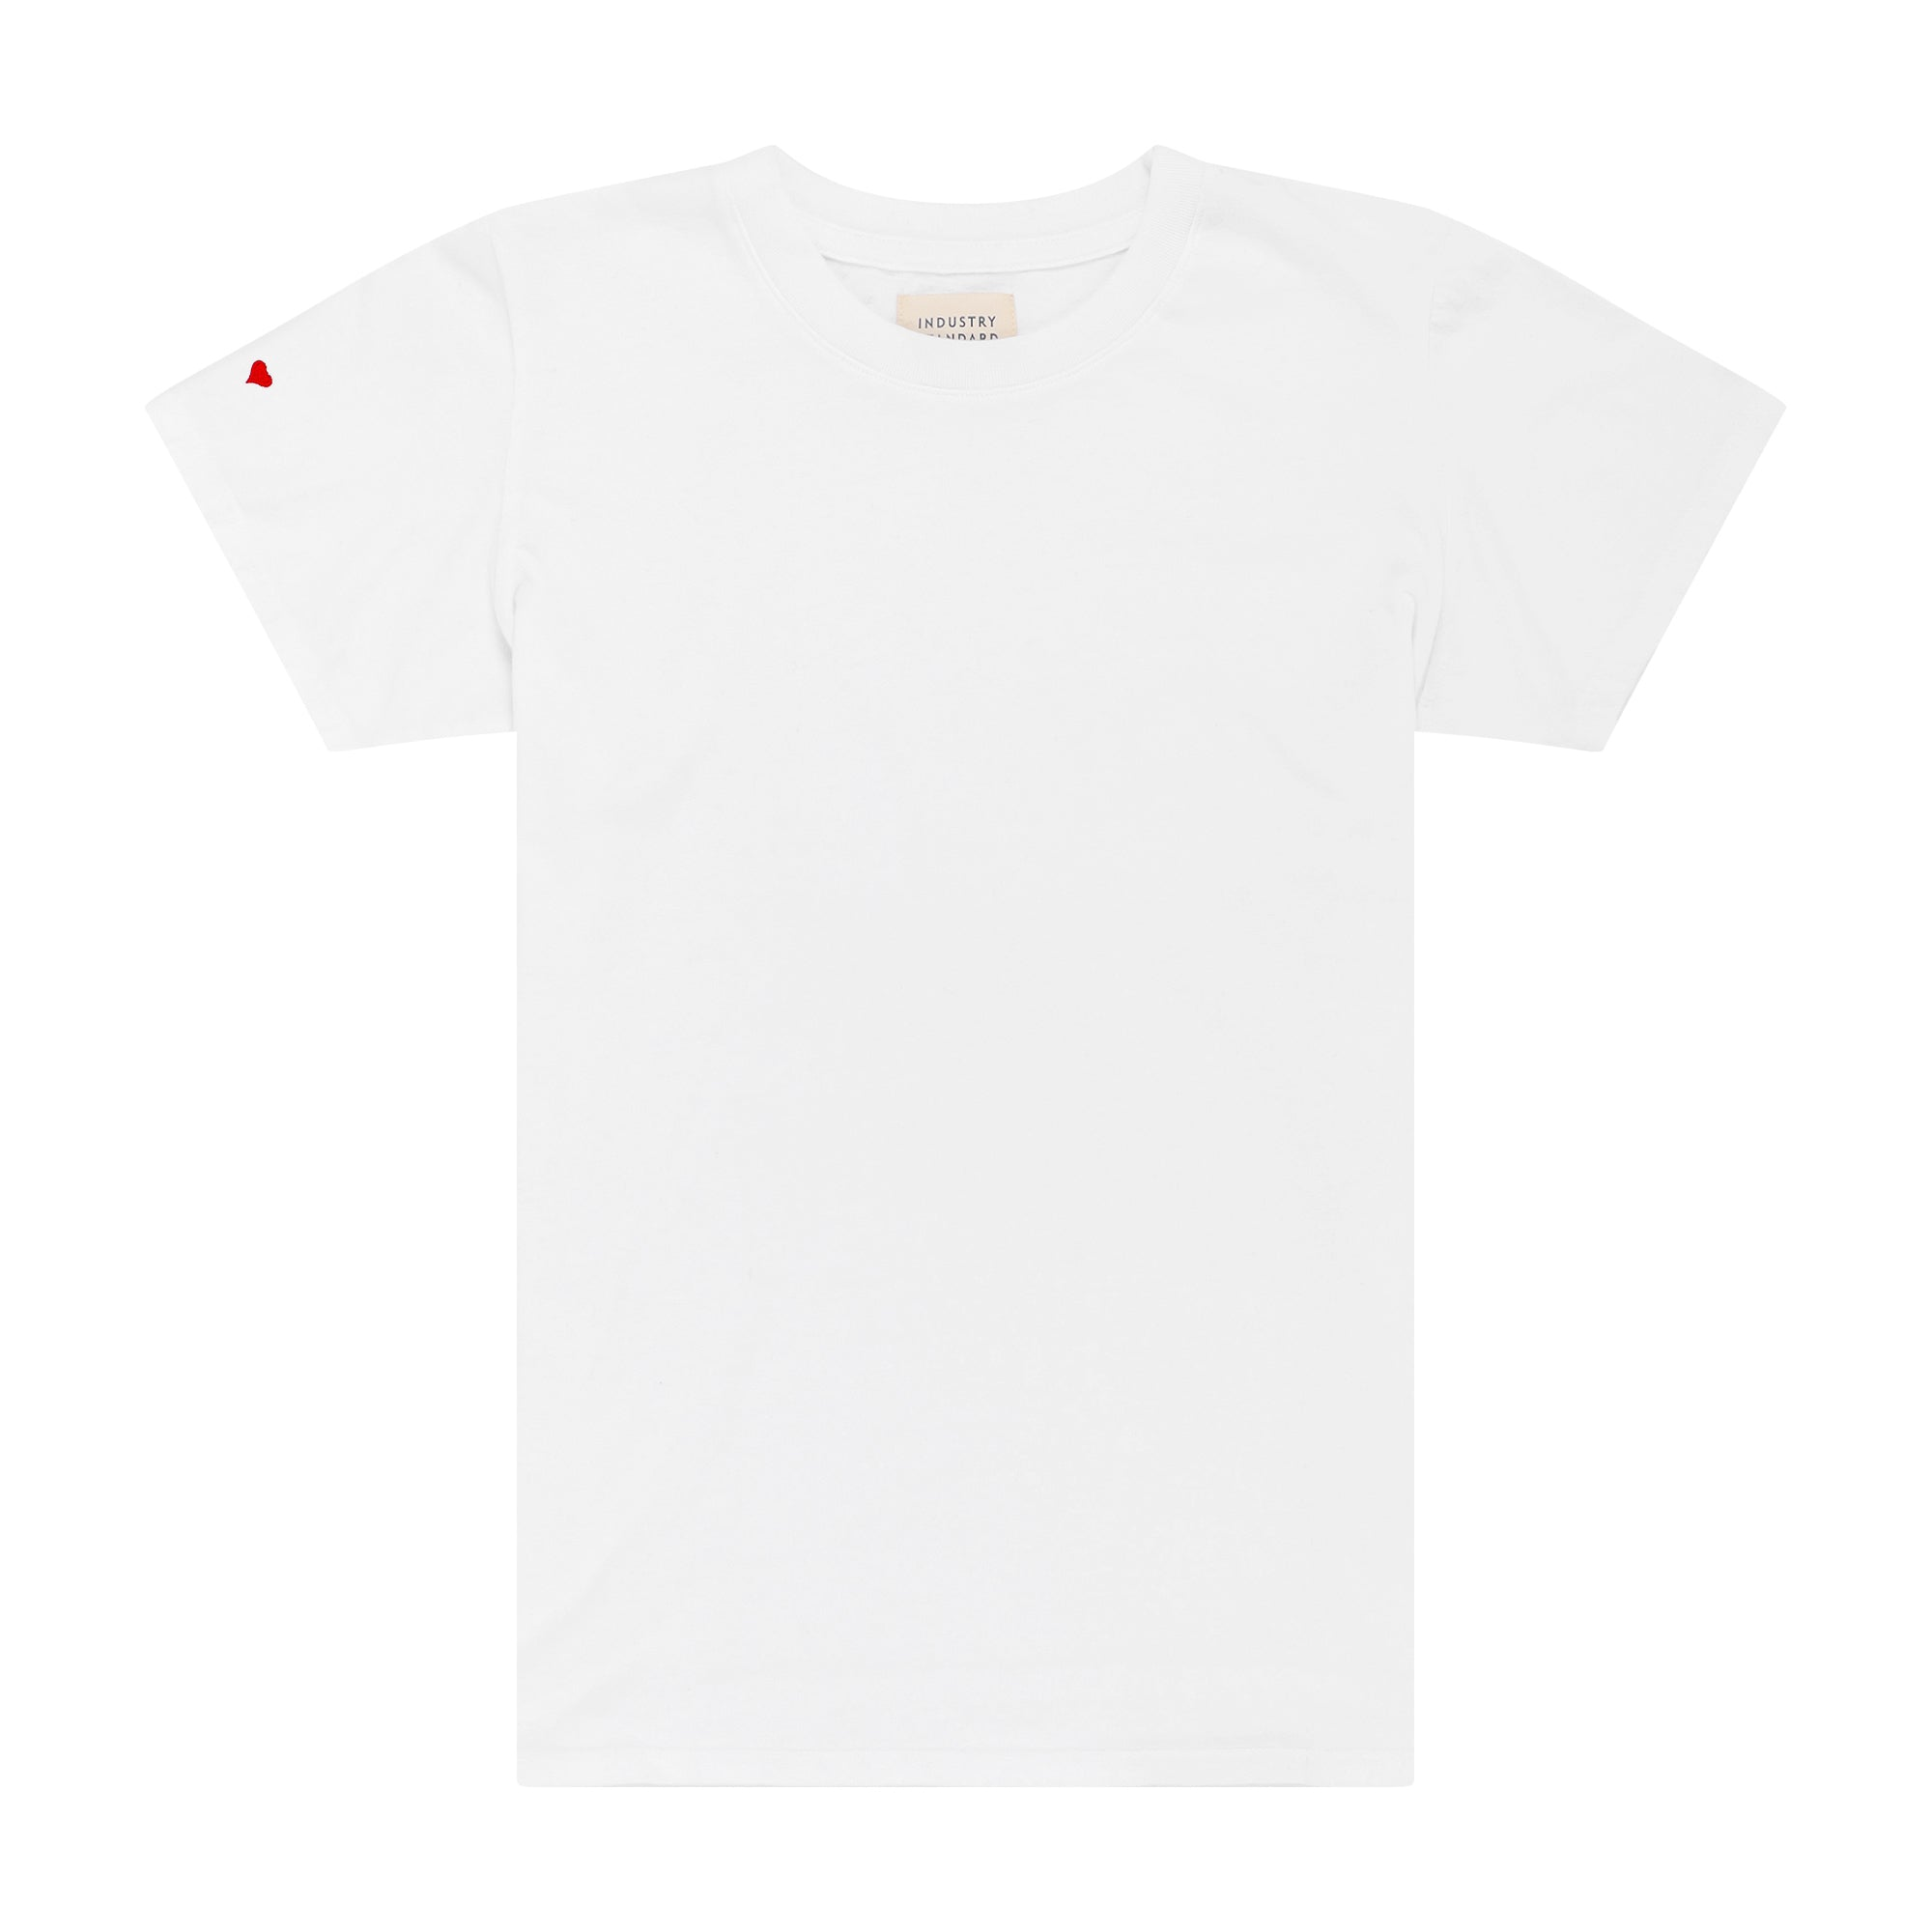 The Maxime Amour II Tee